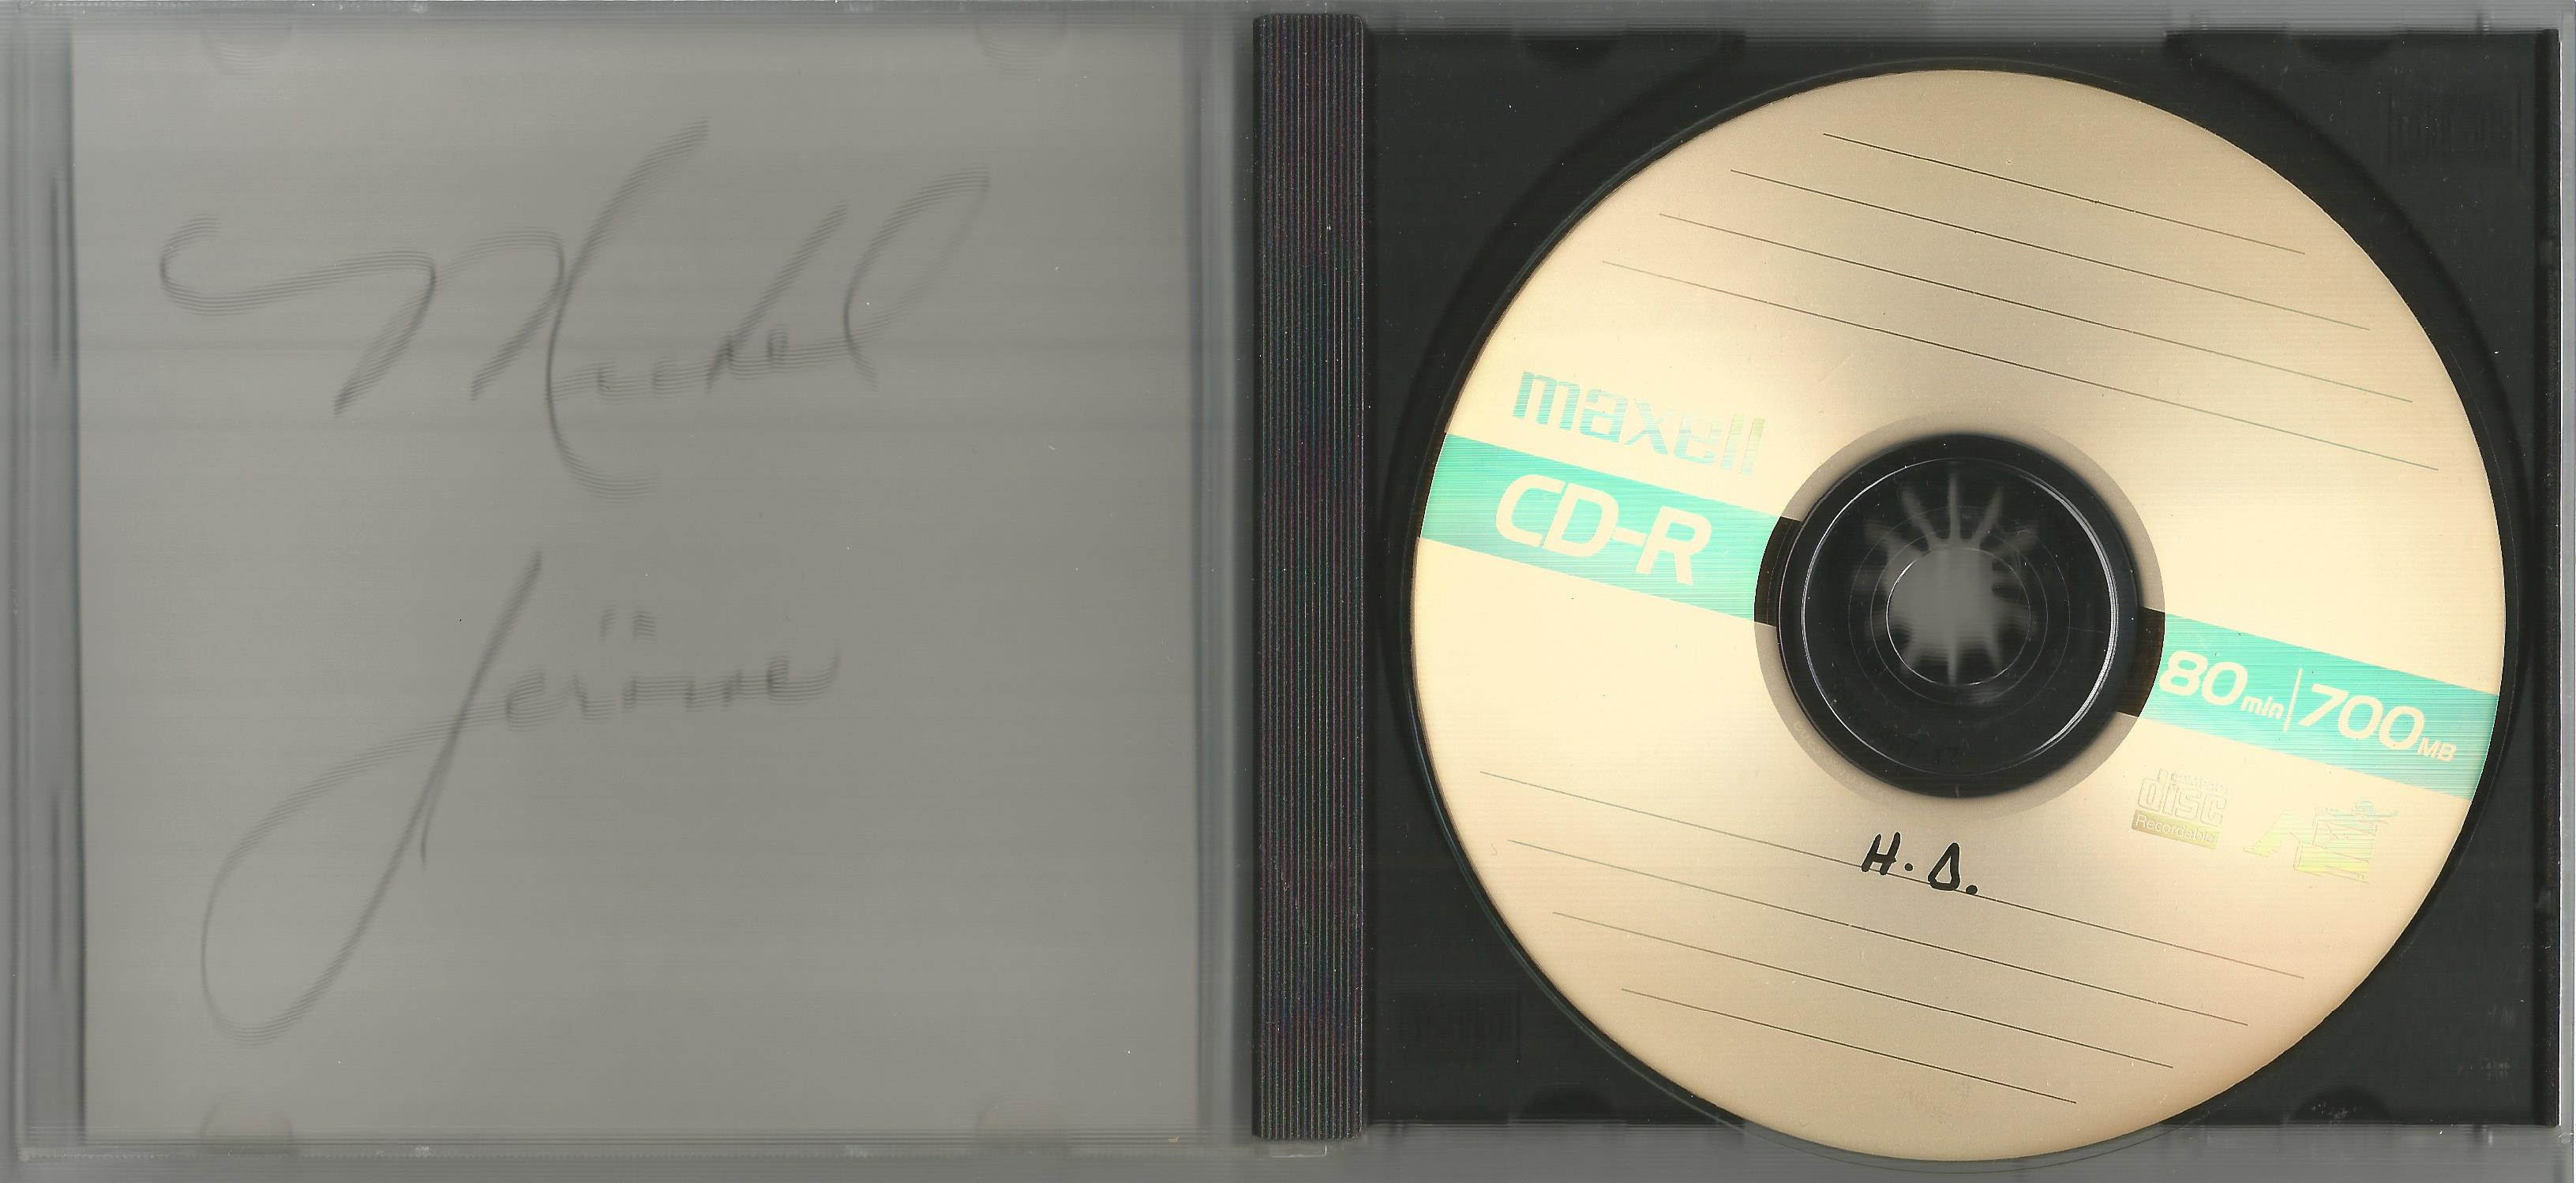 6 Signed CDs Including Michael Graham (Inspirations) Disc Included, Hazel O'Connor (The Bluja - Image 2 of 6